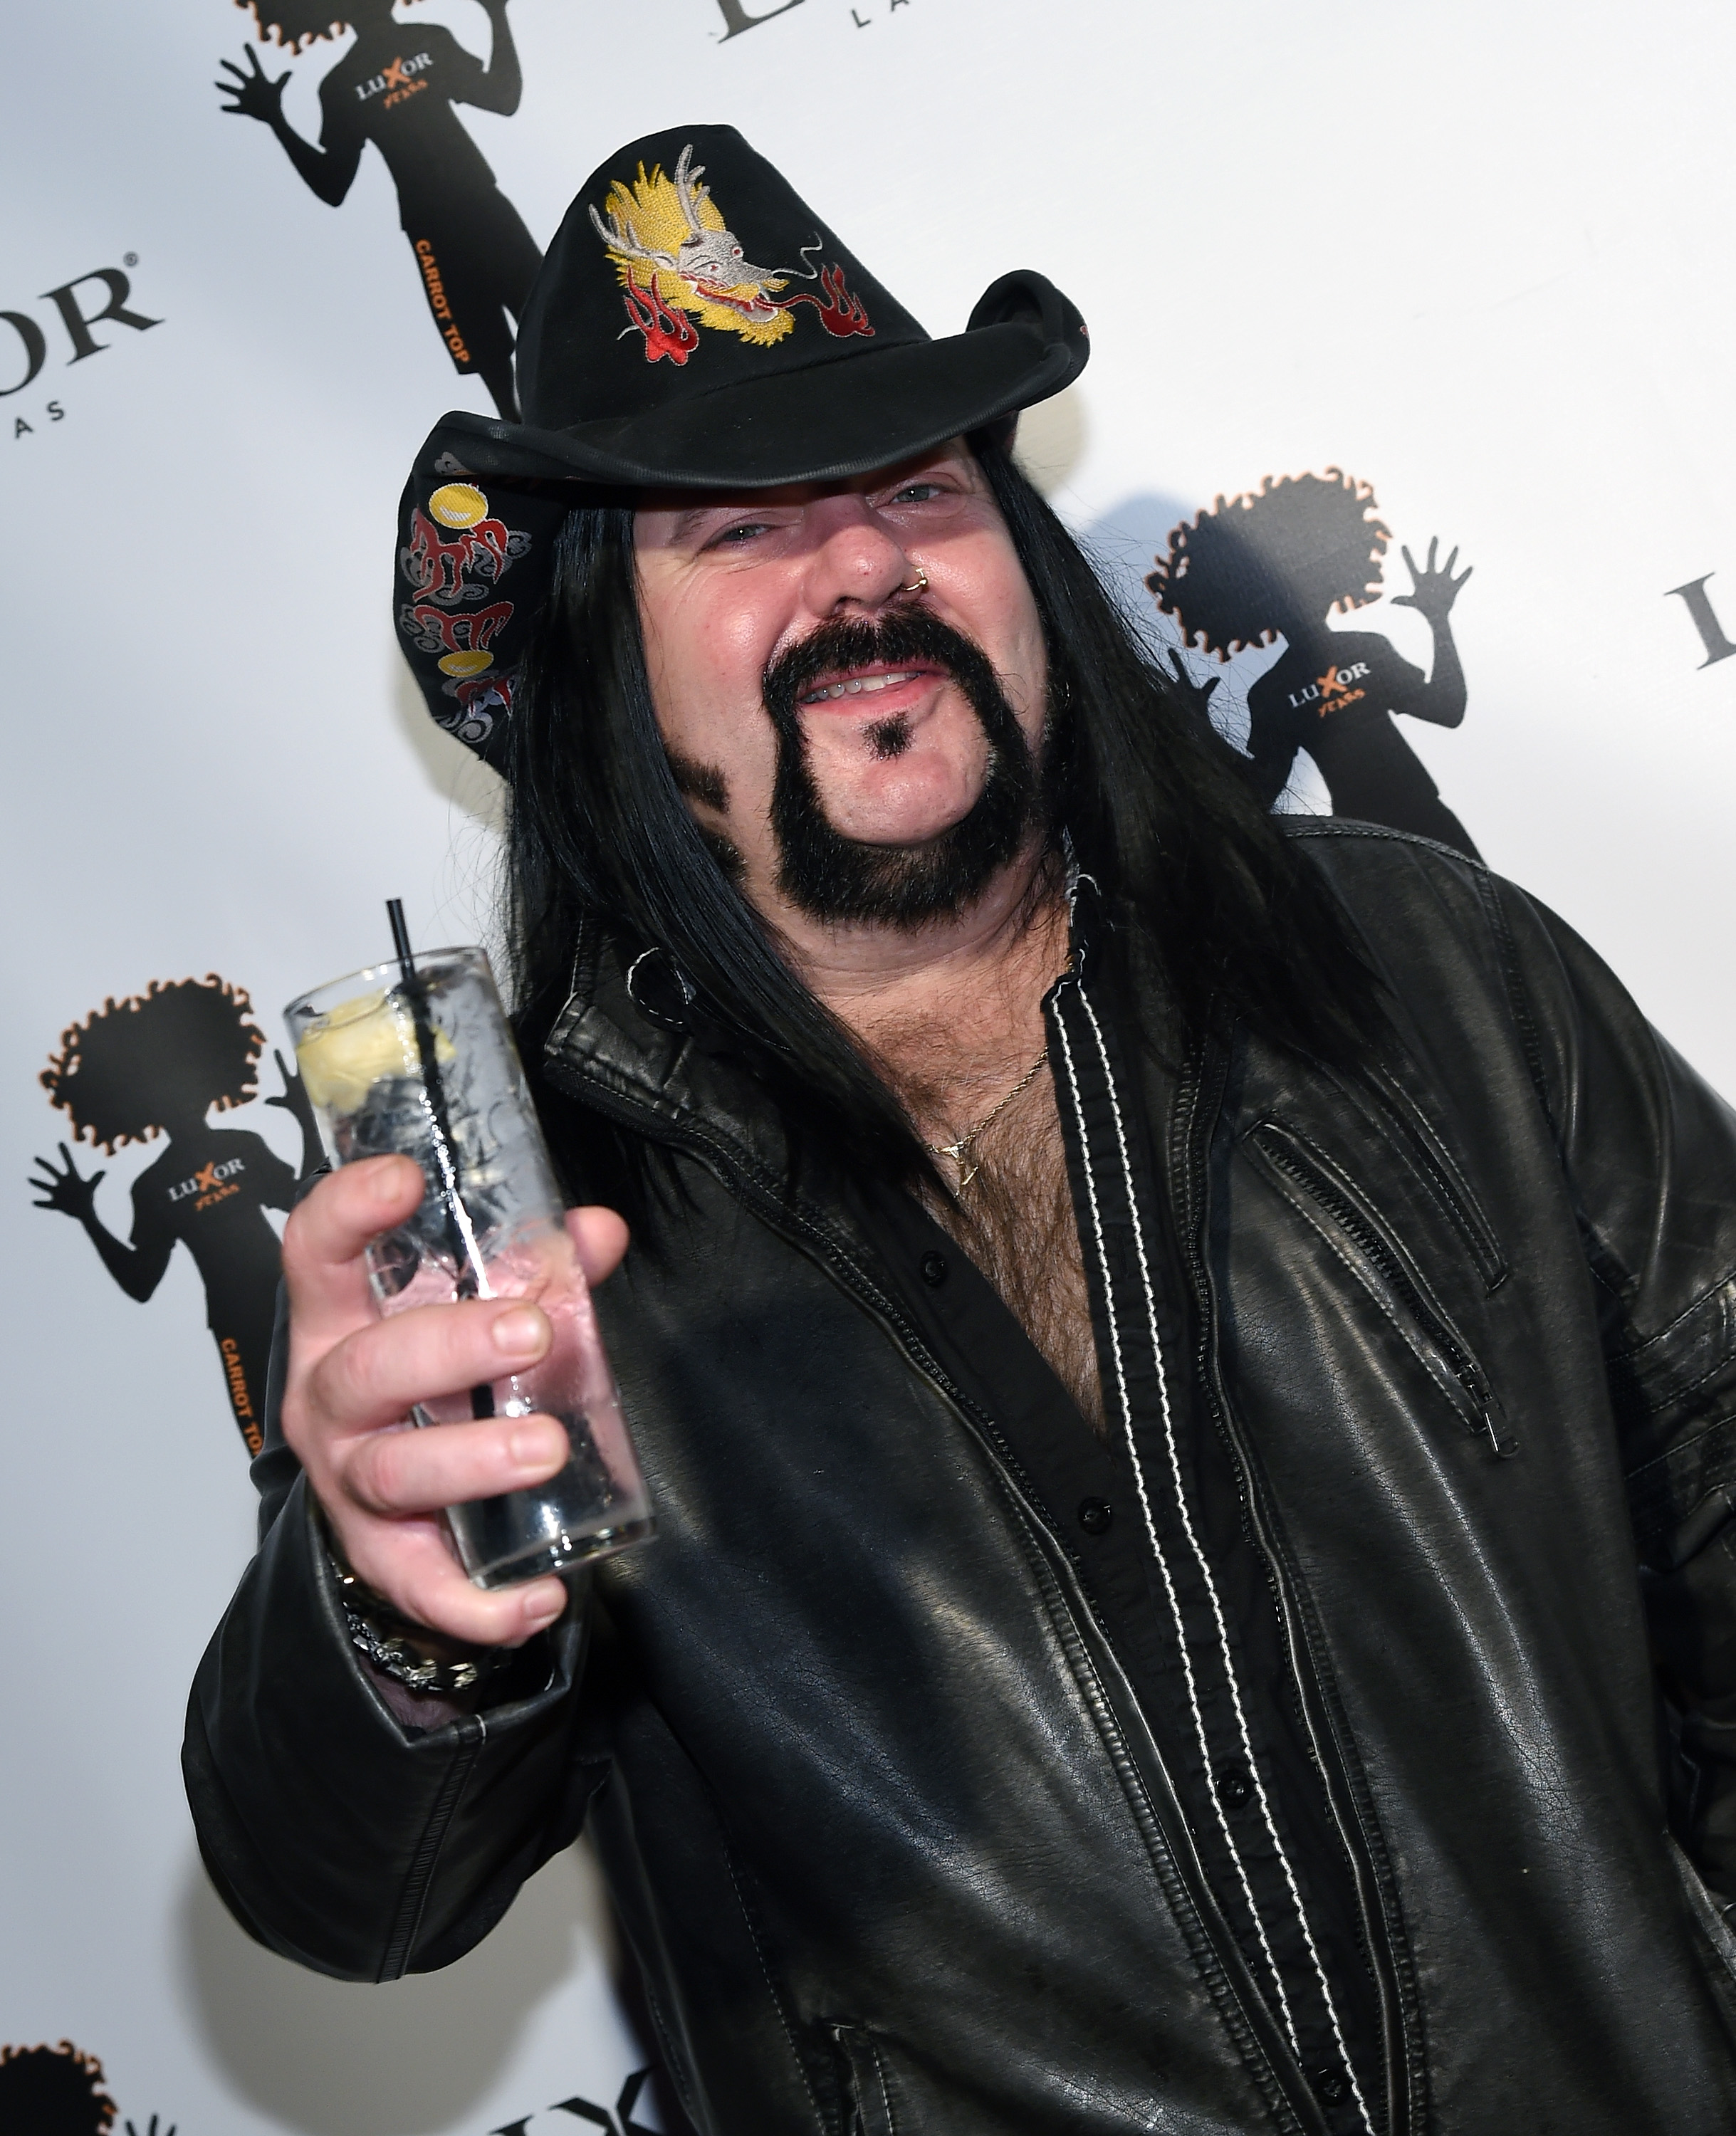 Recording artist Vinnie Paul attends the 10th anniversary celebration of Carrot Top's residency at the Luxor Hotel and Casino on December 6, 2015 in Las Vegas, Nevada.